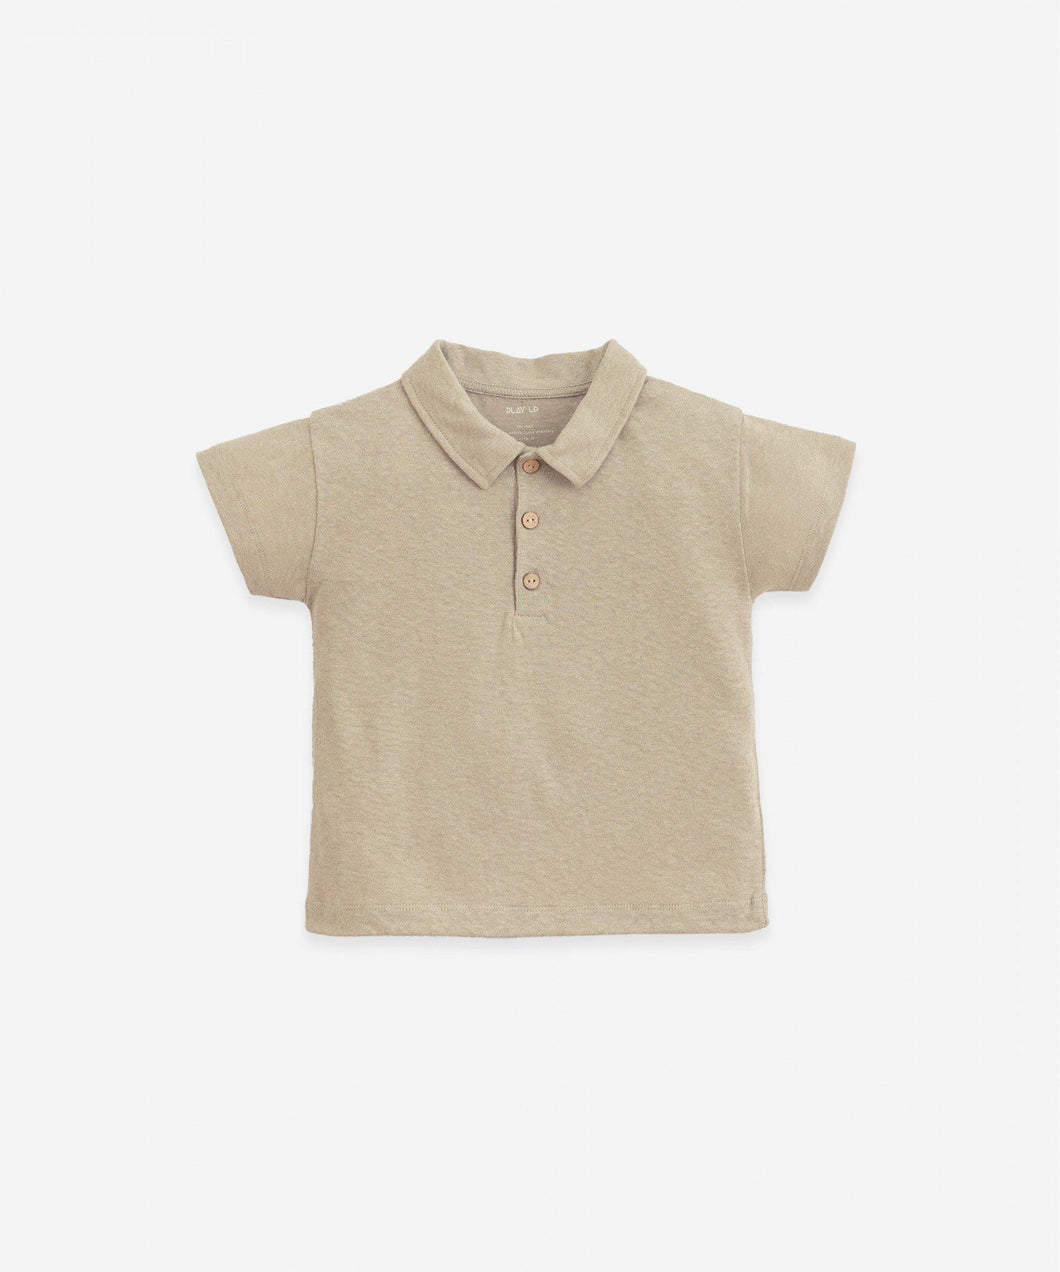 Polo marron de niño de la marca Play UP